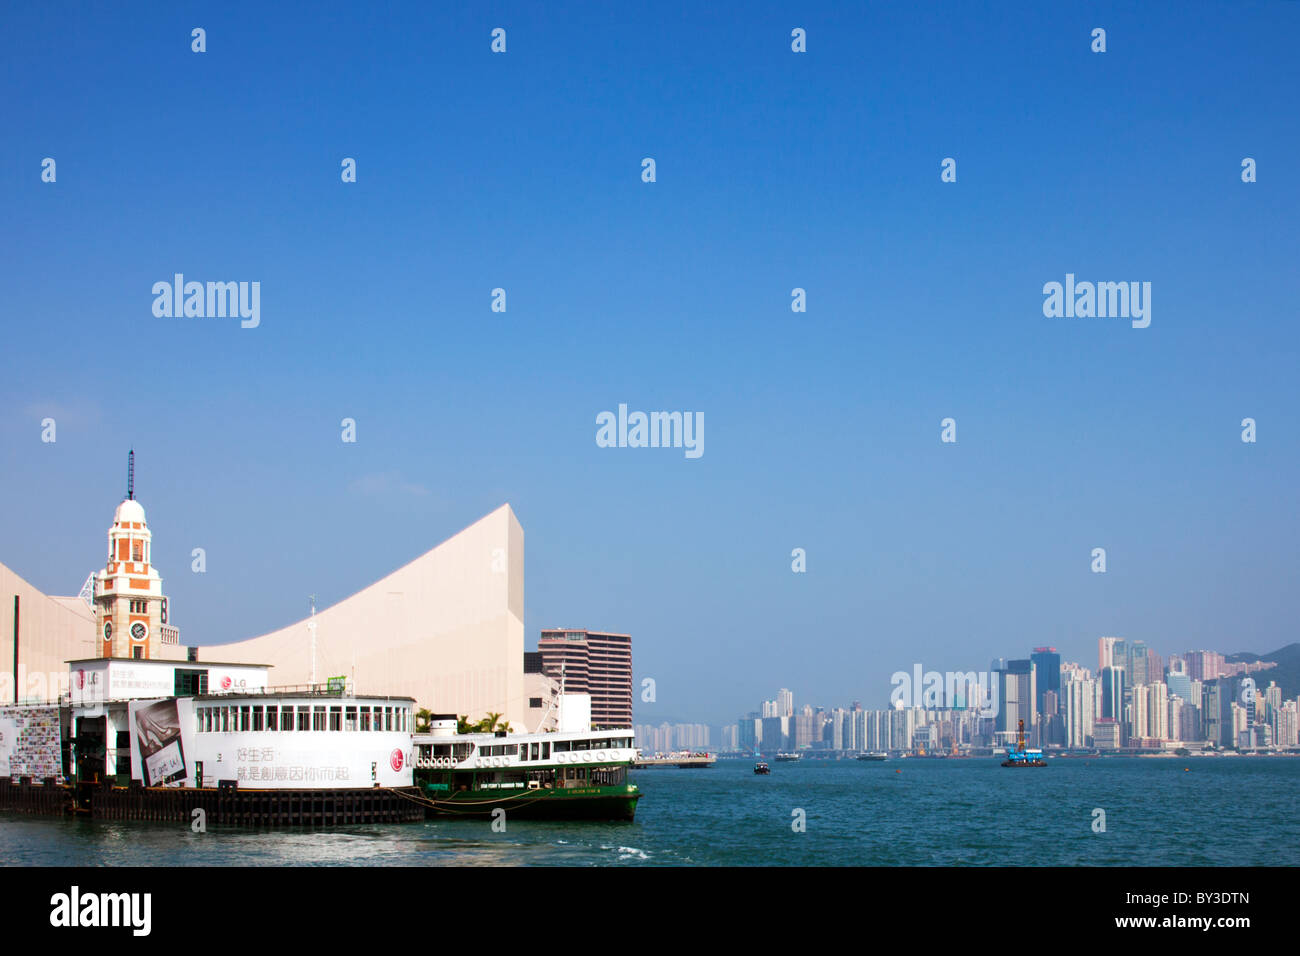 The Star Ferry, moored at Kowloon with Hong Kong island in background across Victoria Harbour harbor buildings modern - Stock Image